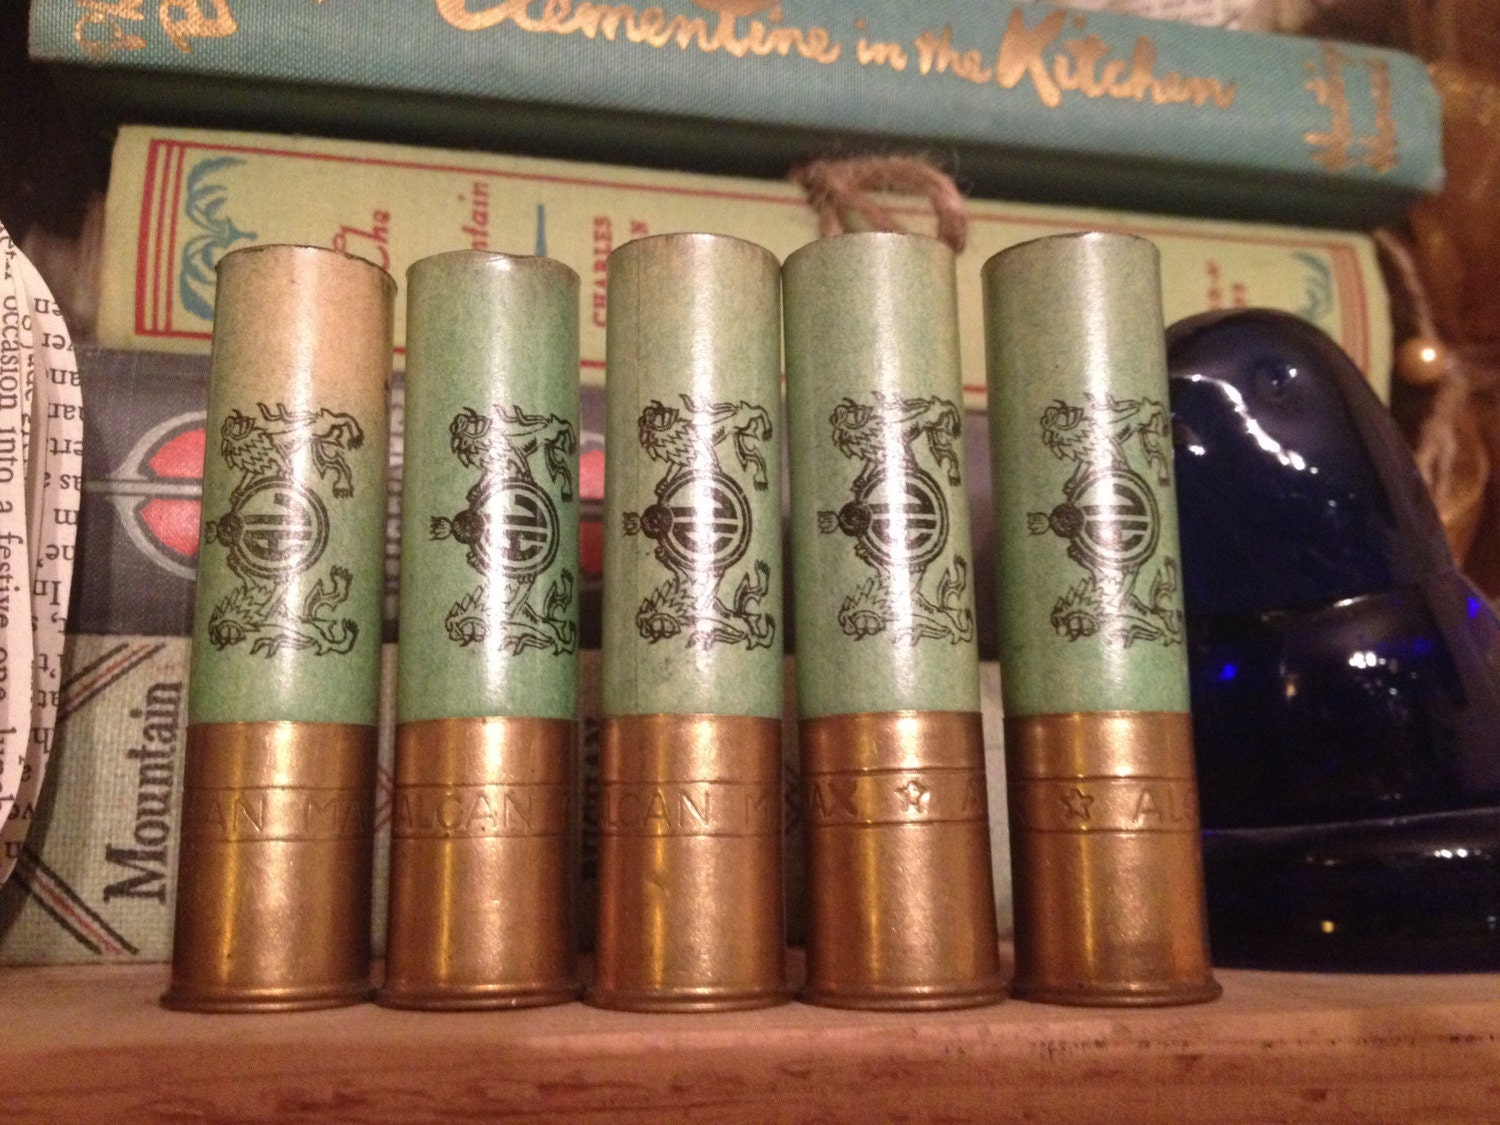 dating old shotgun shells Smokeless powder in damascus barrel shotguns and shoot damascus barreled shotguns that are quite old, but they don't load them with ammunition that join date.